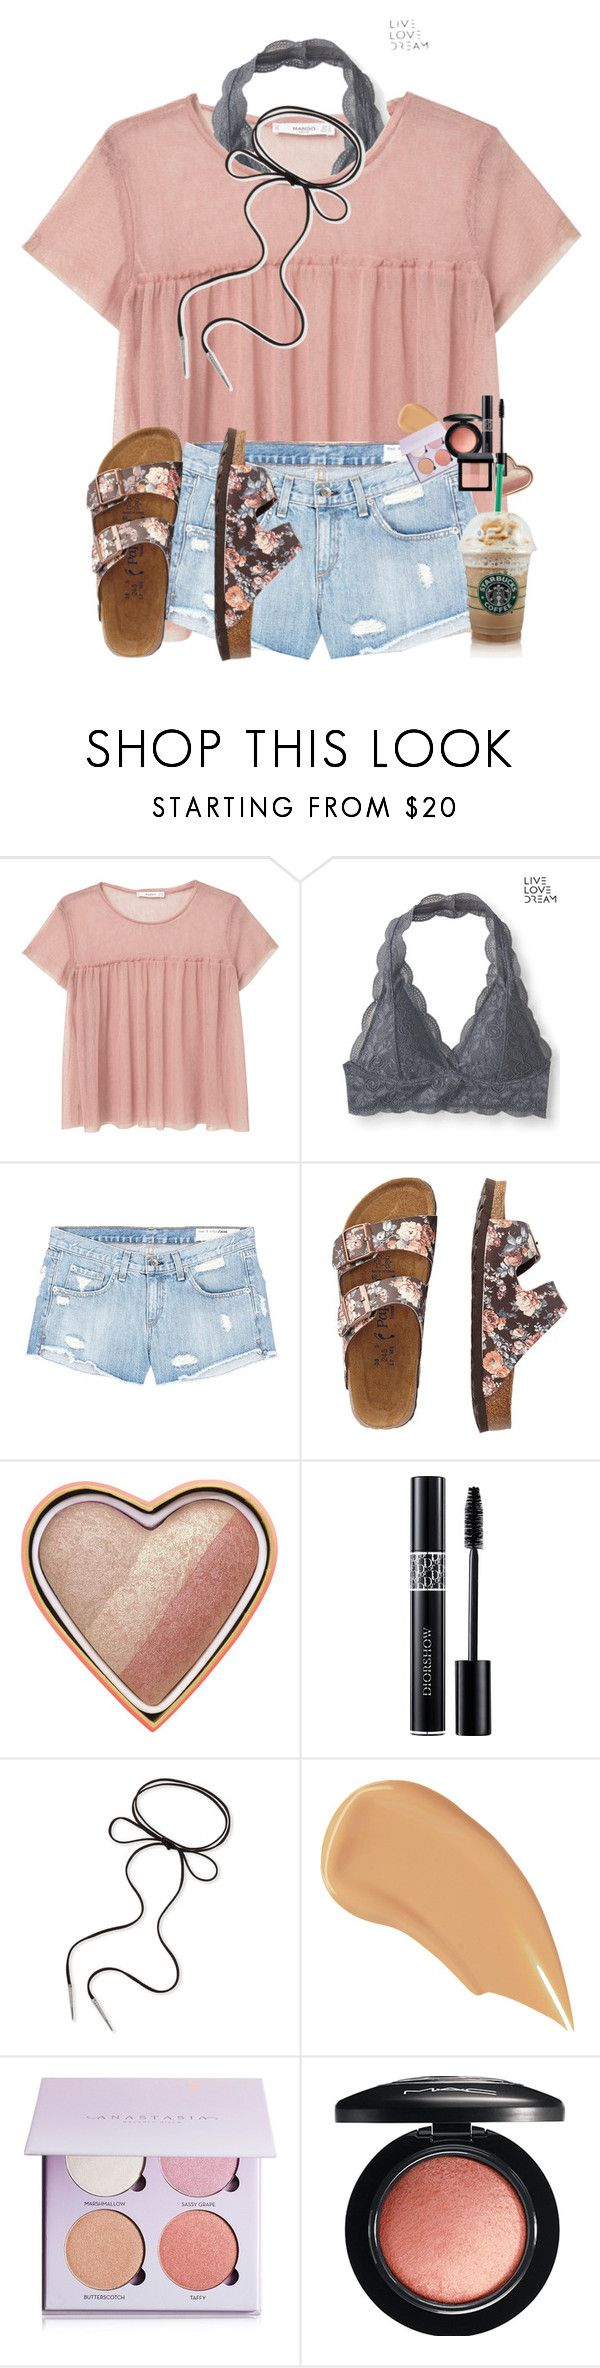 """""""Trying something new"""" by amaya-leigh ❤ liked on Polyvore featuring MANGO, Aéropostale, rag & bone/JEAN, TravelSmith, Too Faced Cosmetics, Christian Dior, Kendra Scott, NARS Cosmetics, Anastasia Beverly Hills and MAC Cosmetics"""